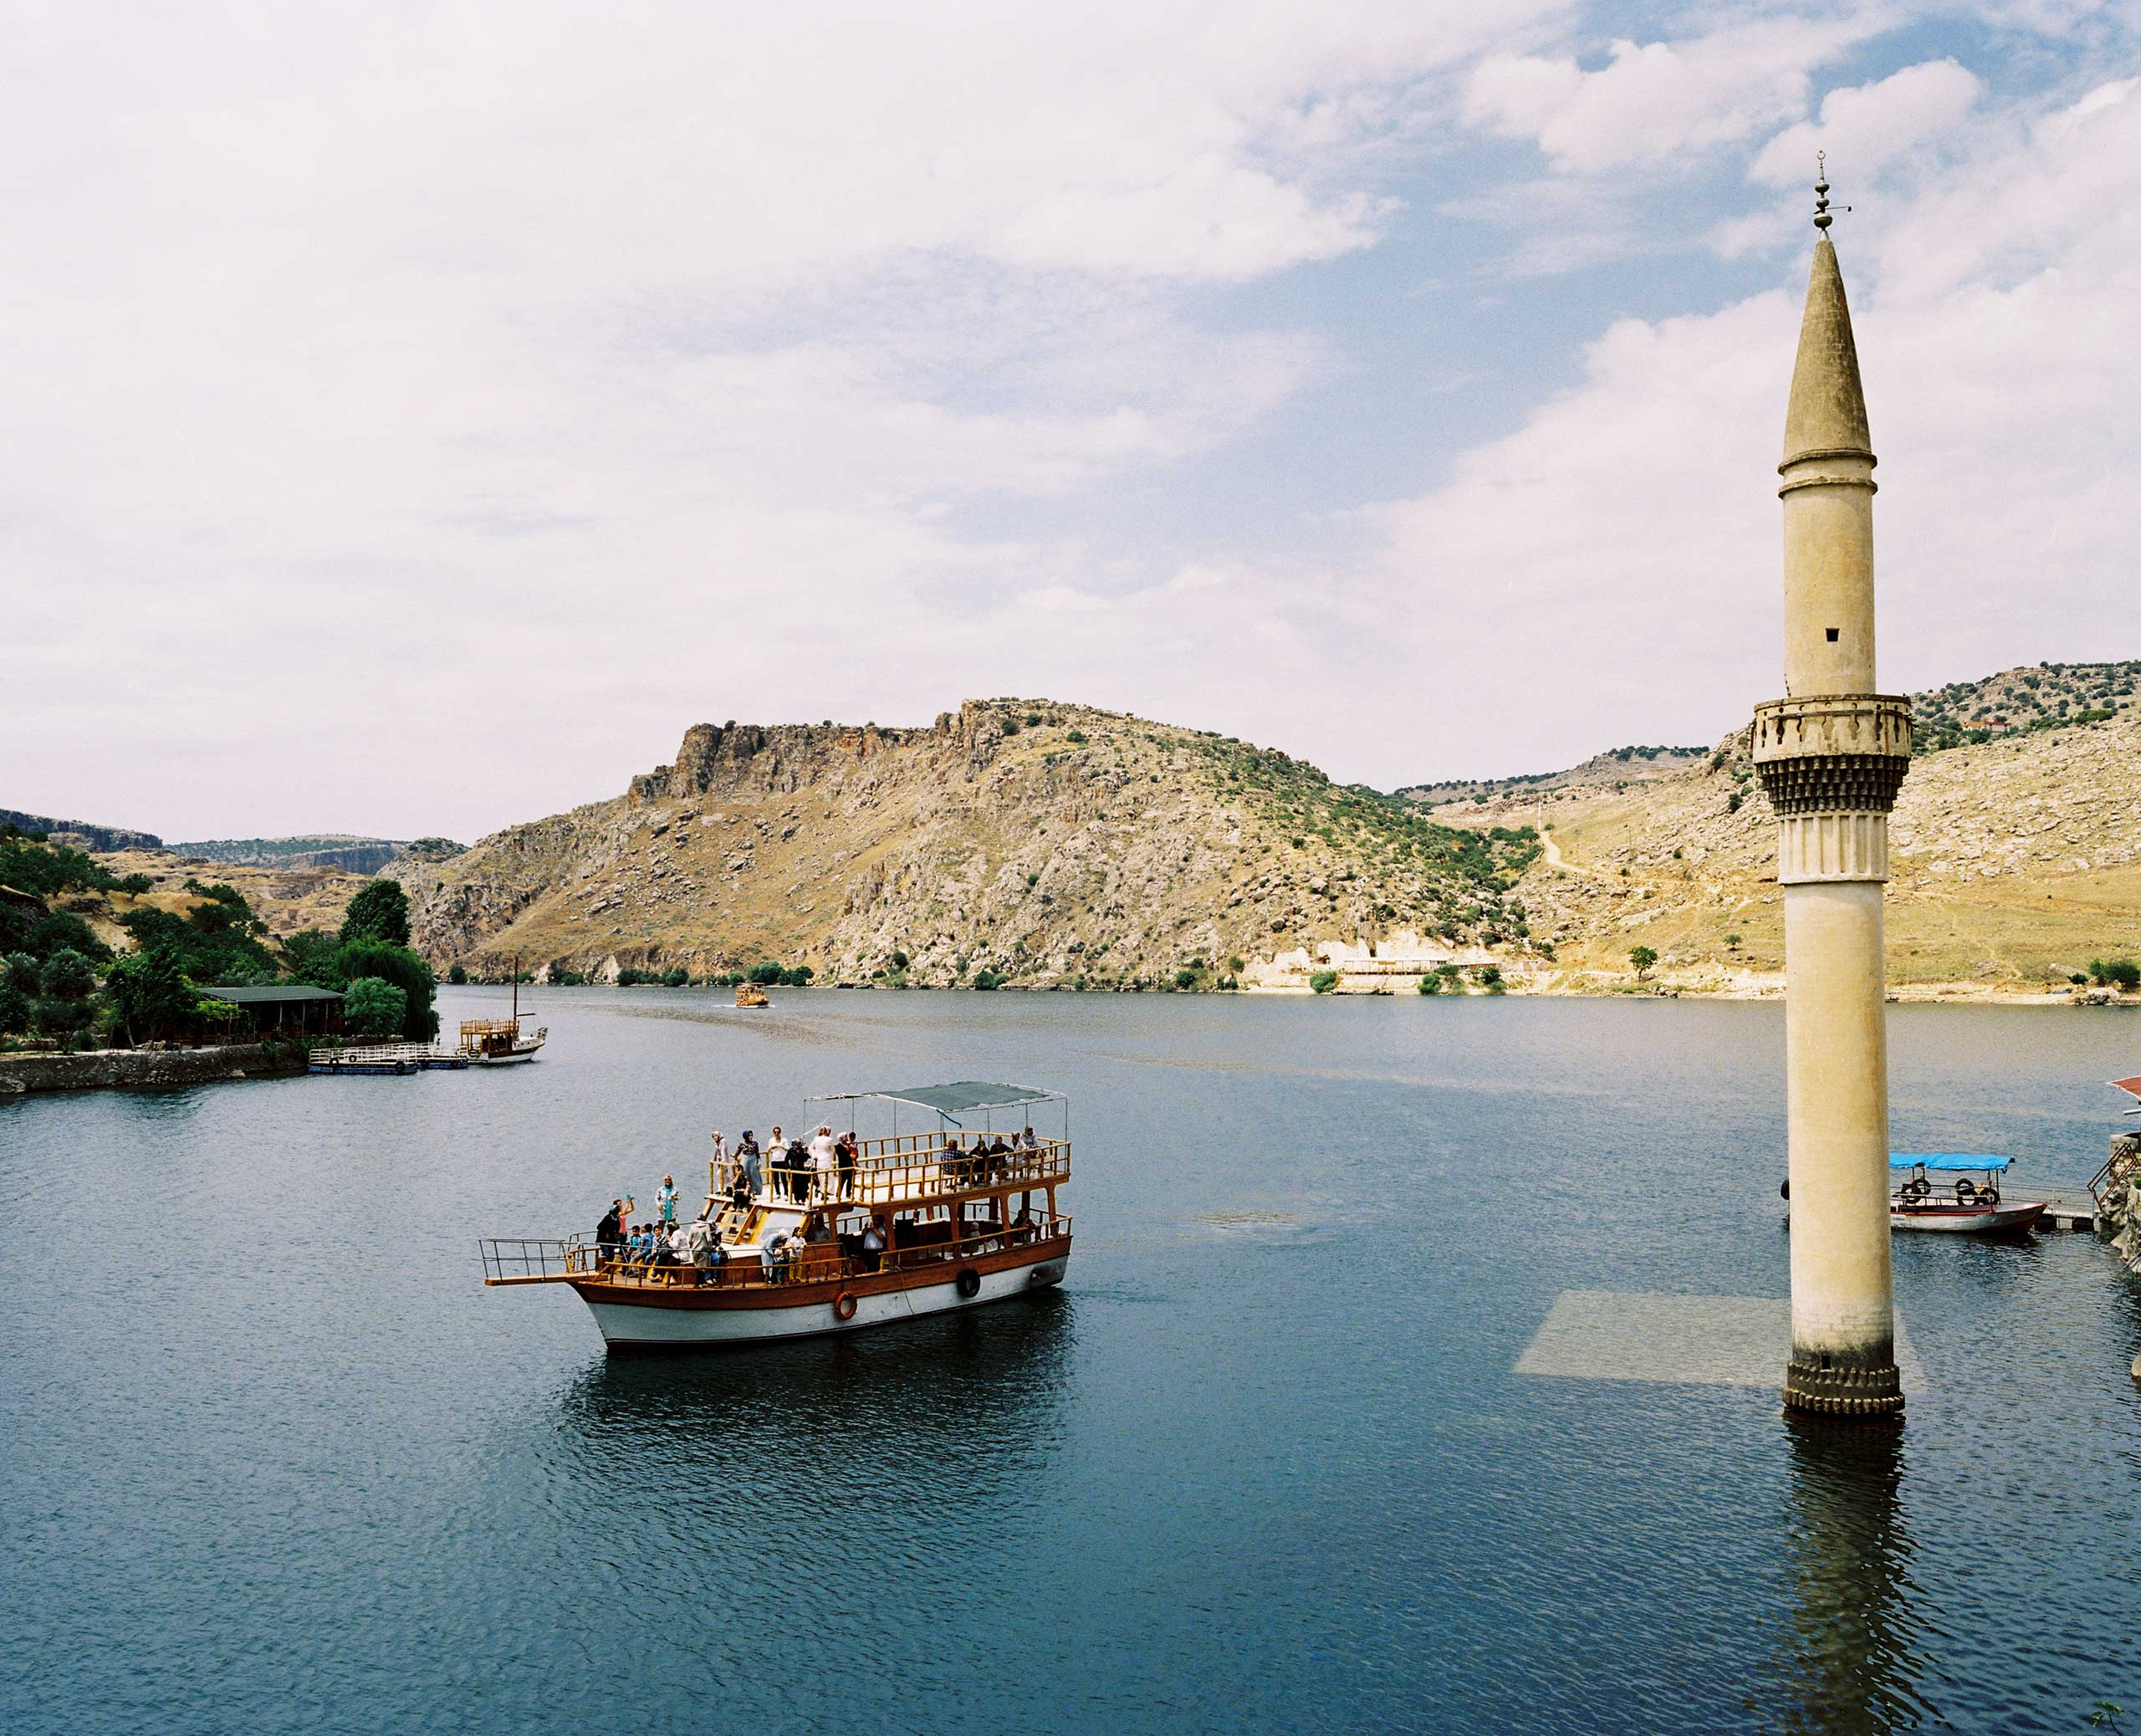 A tourist boat visits the former village of Savaçan, flooded by the reservoir lake of the Birecik Dam on the Euphrates River. Turkey.